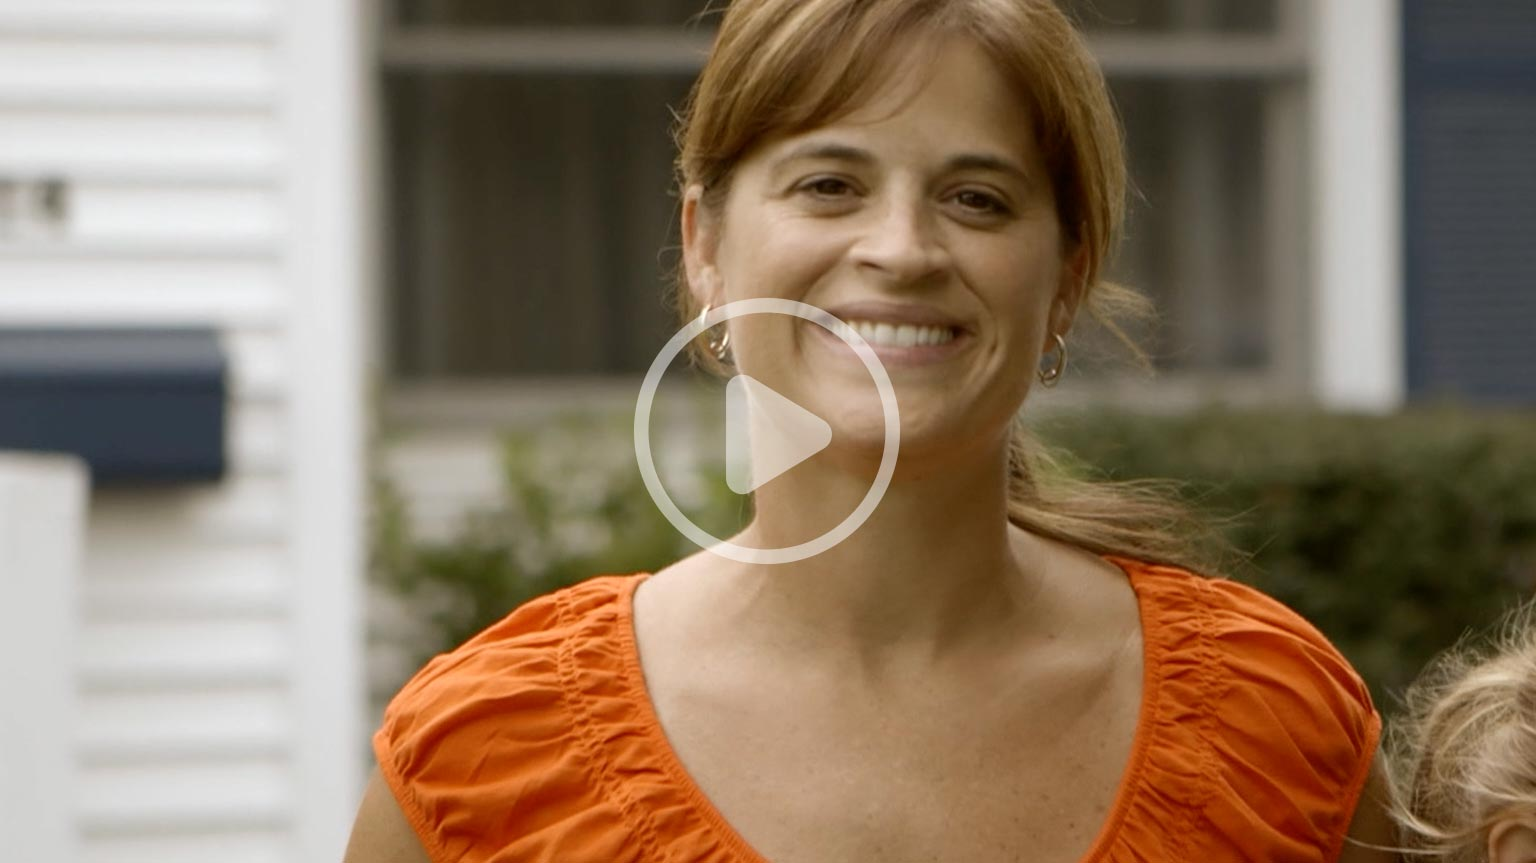 Vivint solar reviews california - 100 000 Customers And Counting